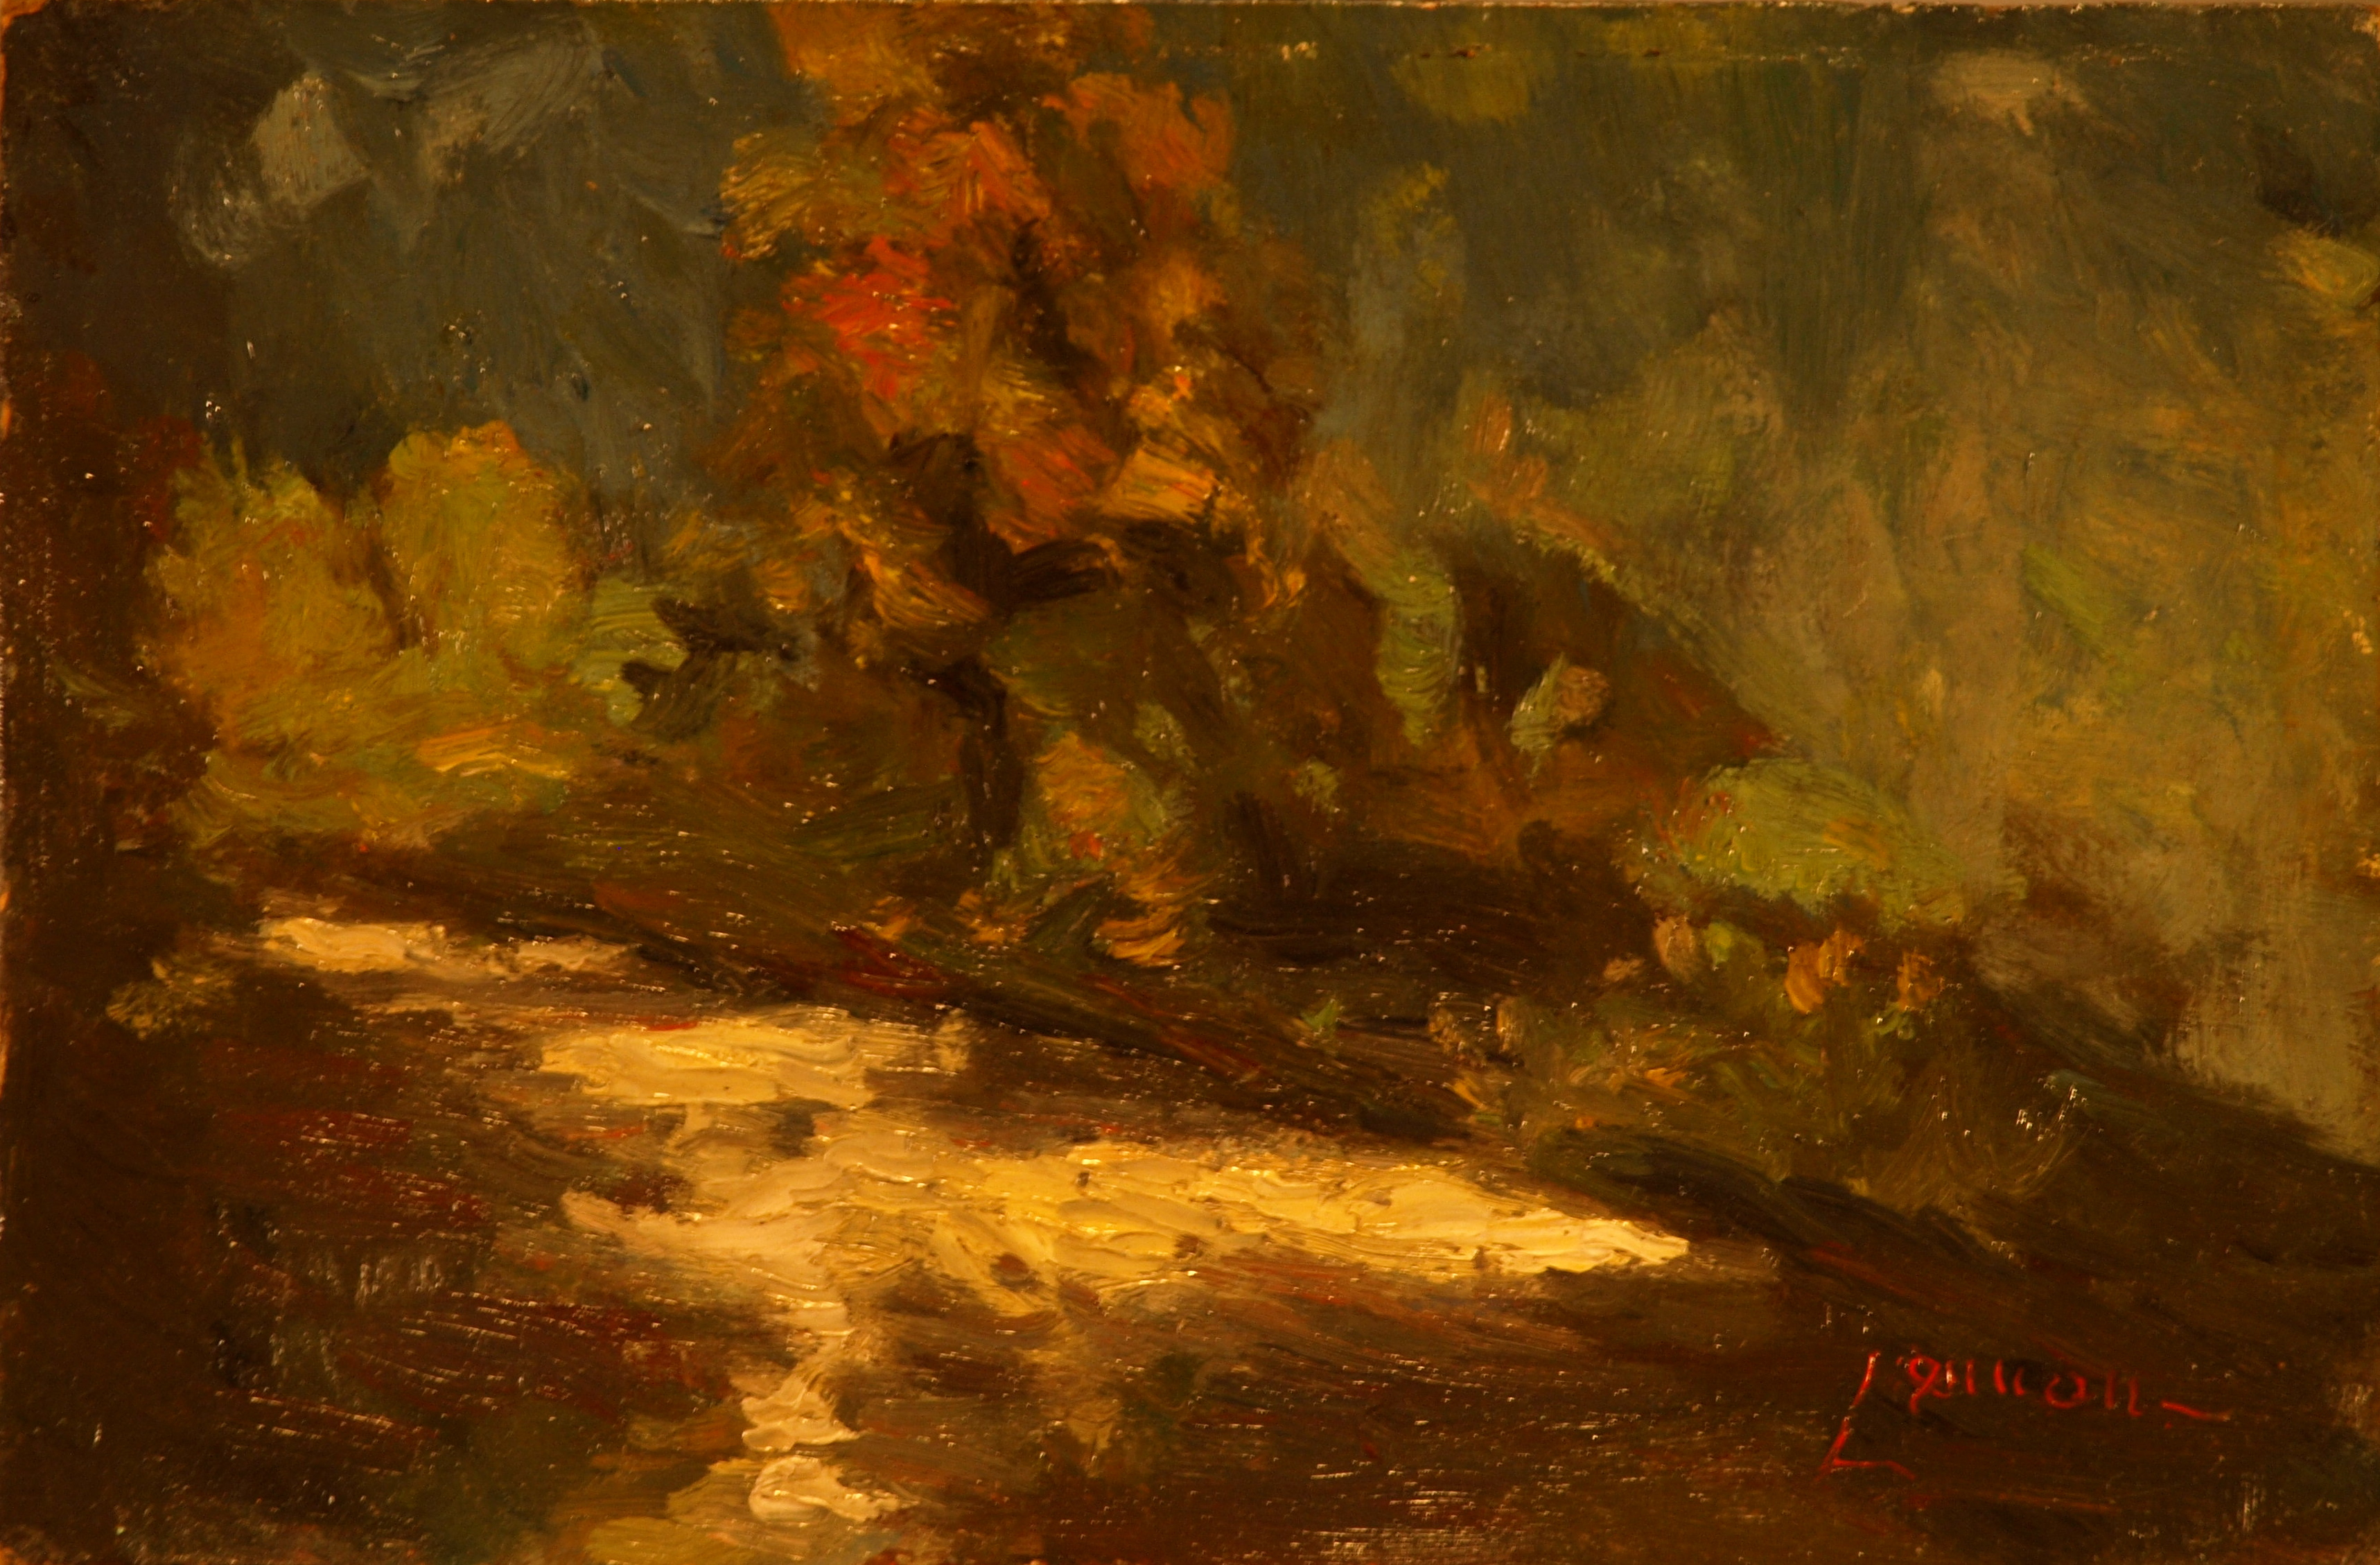 River Reflections, Oil on Panel, 8 x 12 Inches, by Bernard Lennon, $225